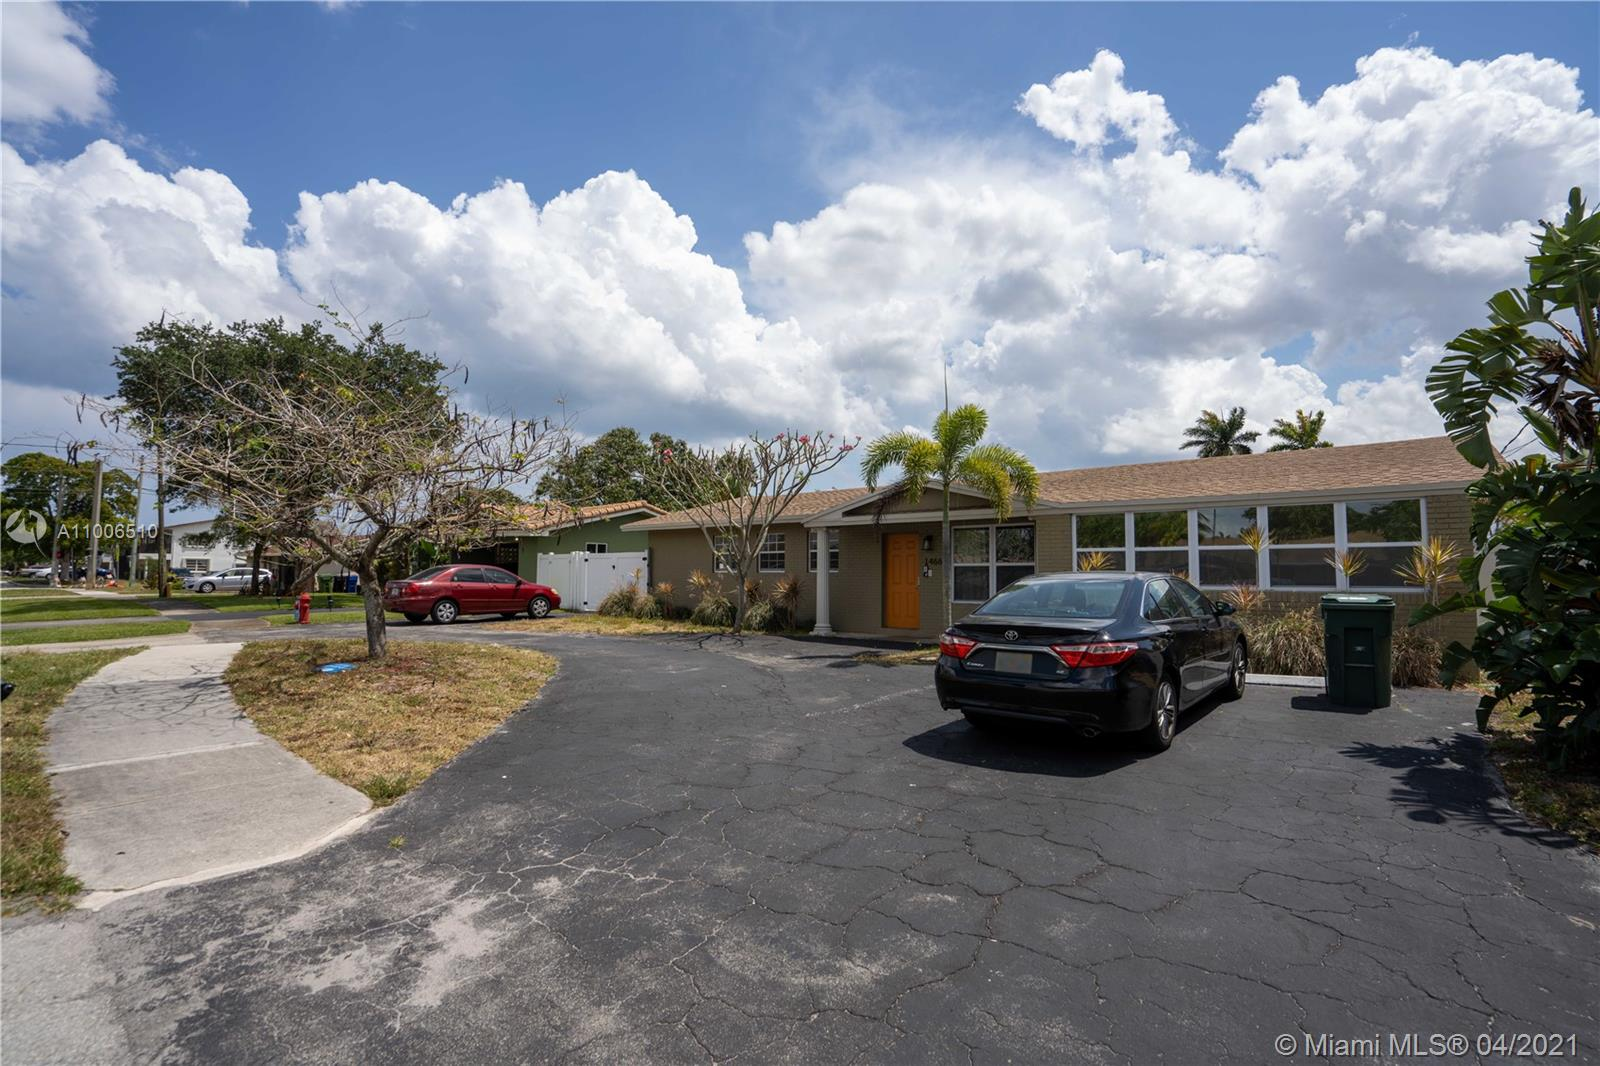 Property for sale at 1466 NE 56th St, Fort Lauderdale,  Florida 33334